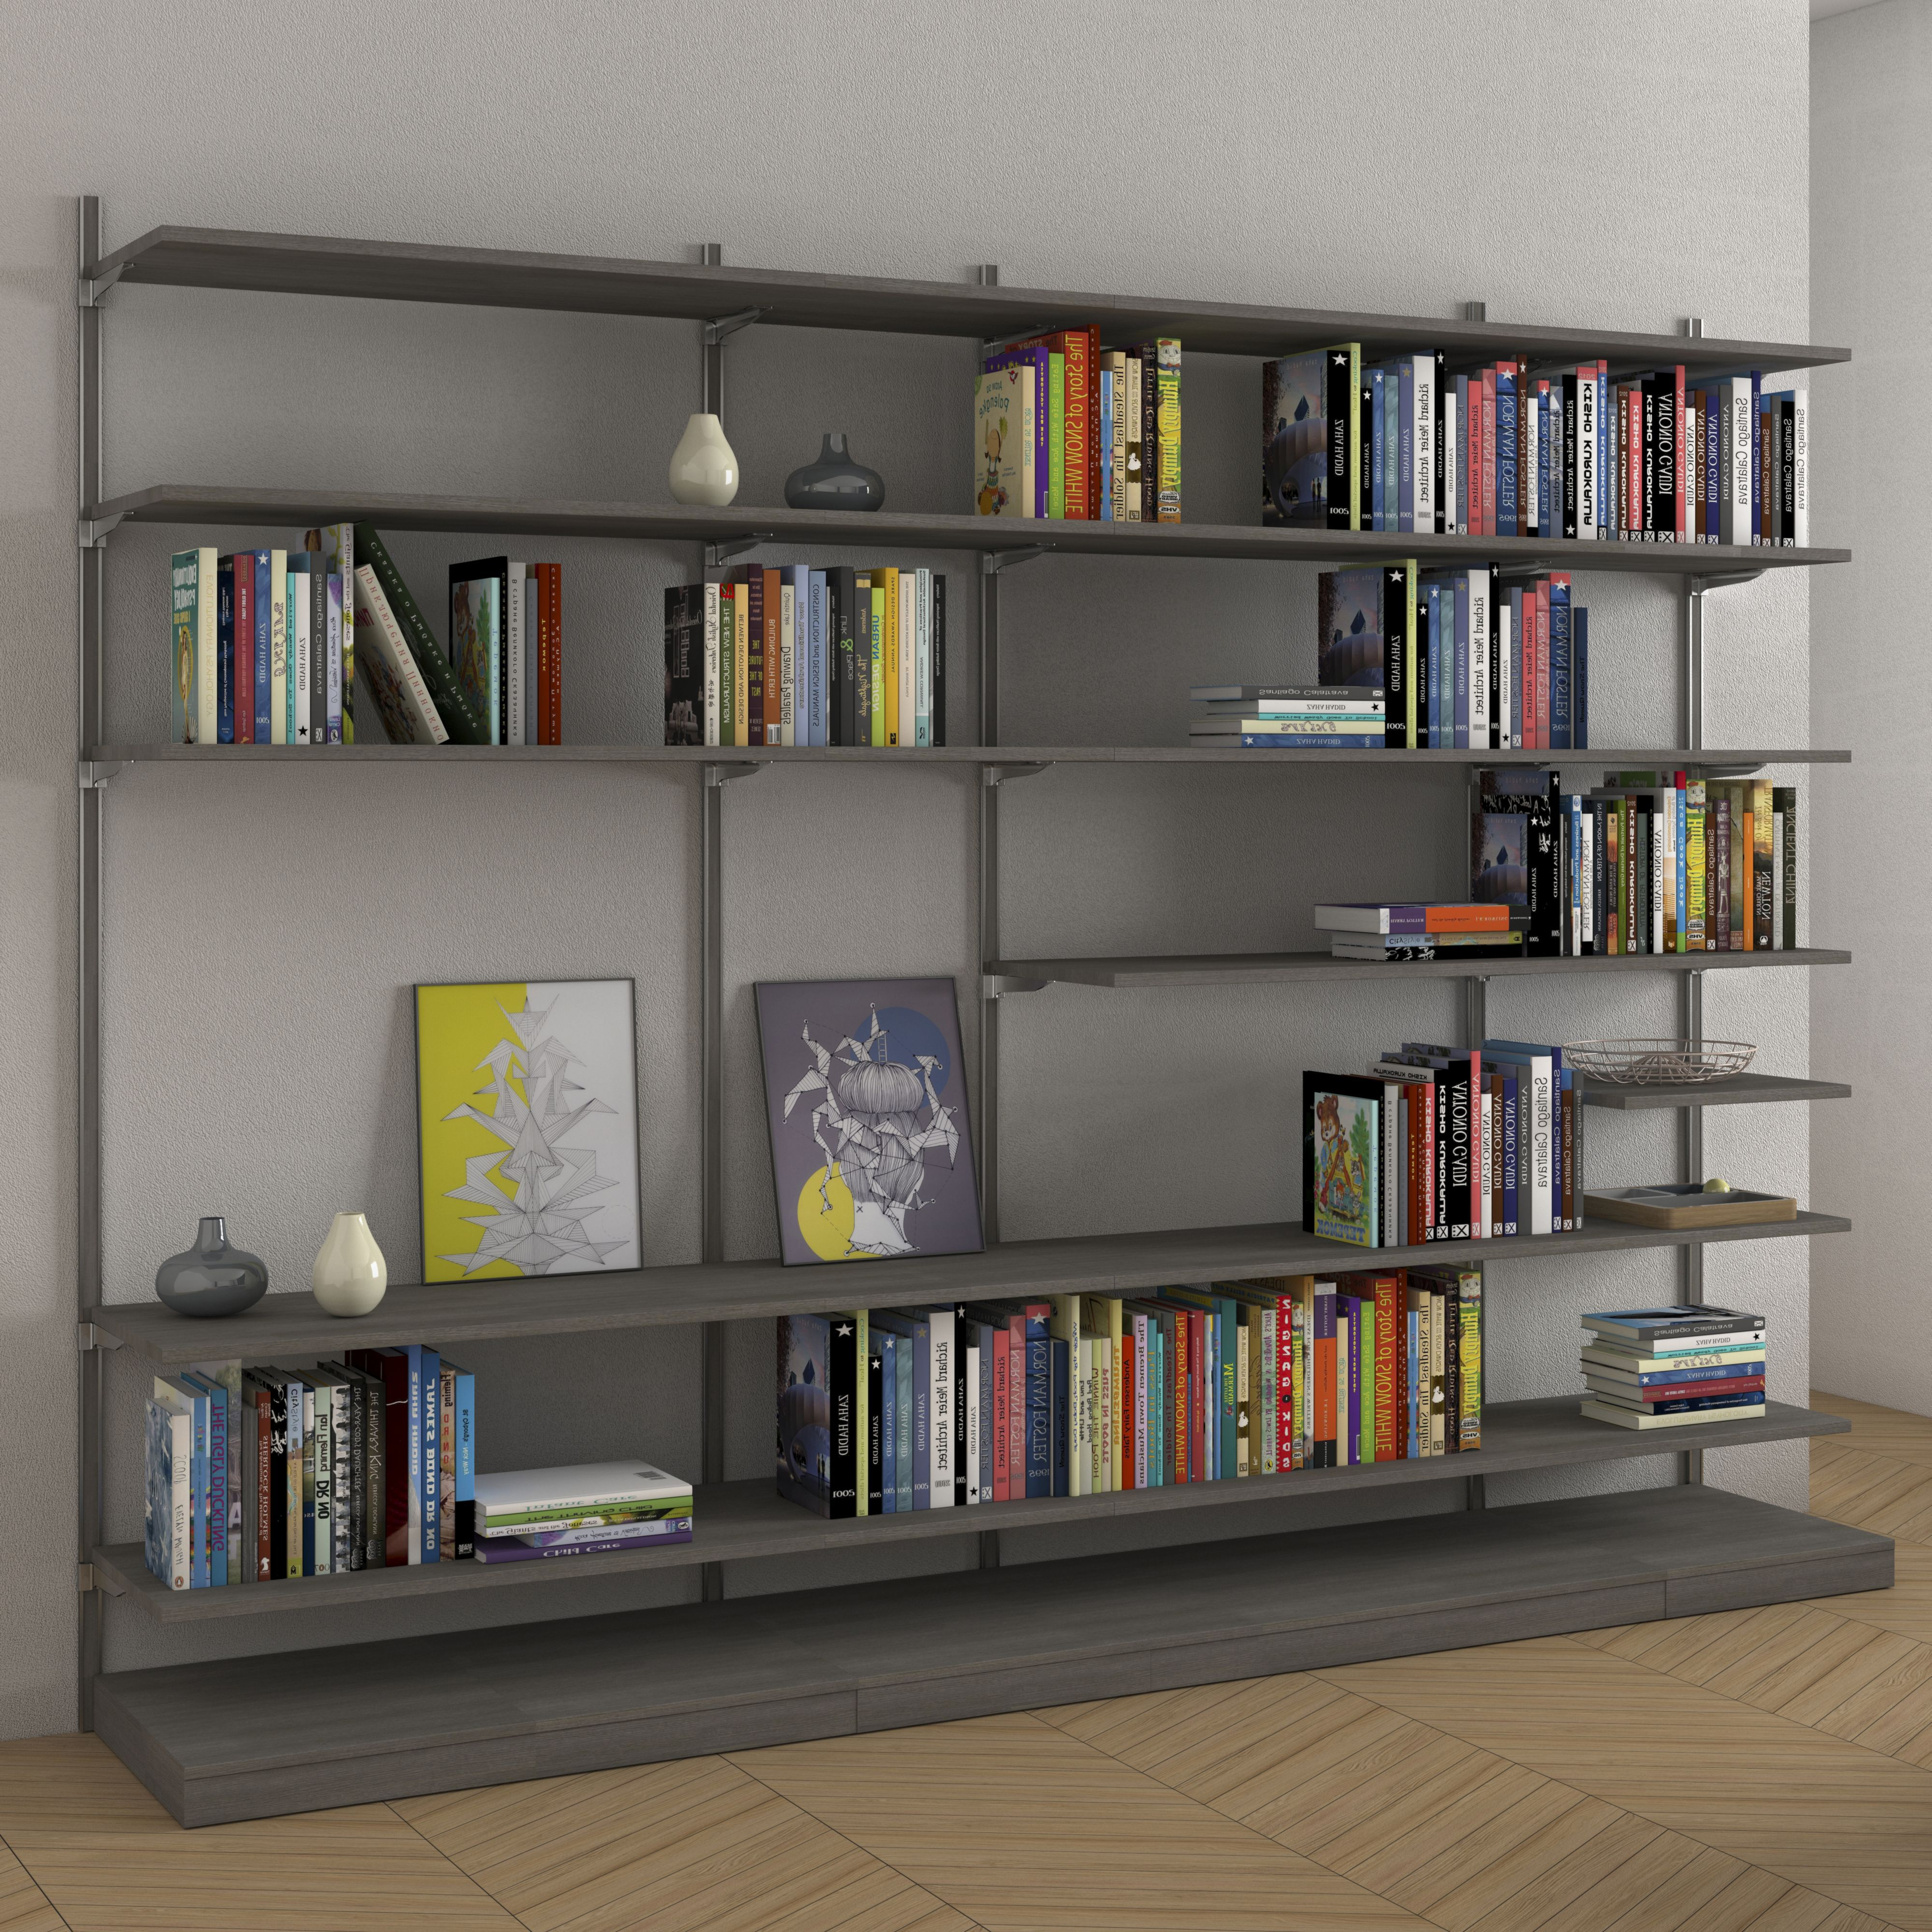 home shelves large decoration wall mounted design shelving amazing smartness units shelf ideas